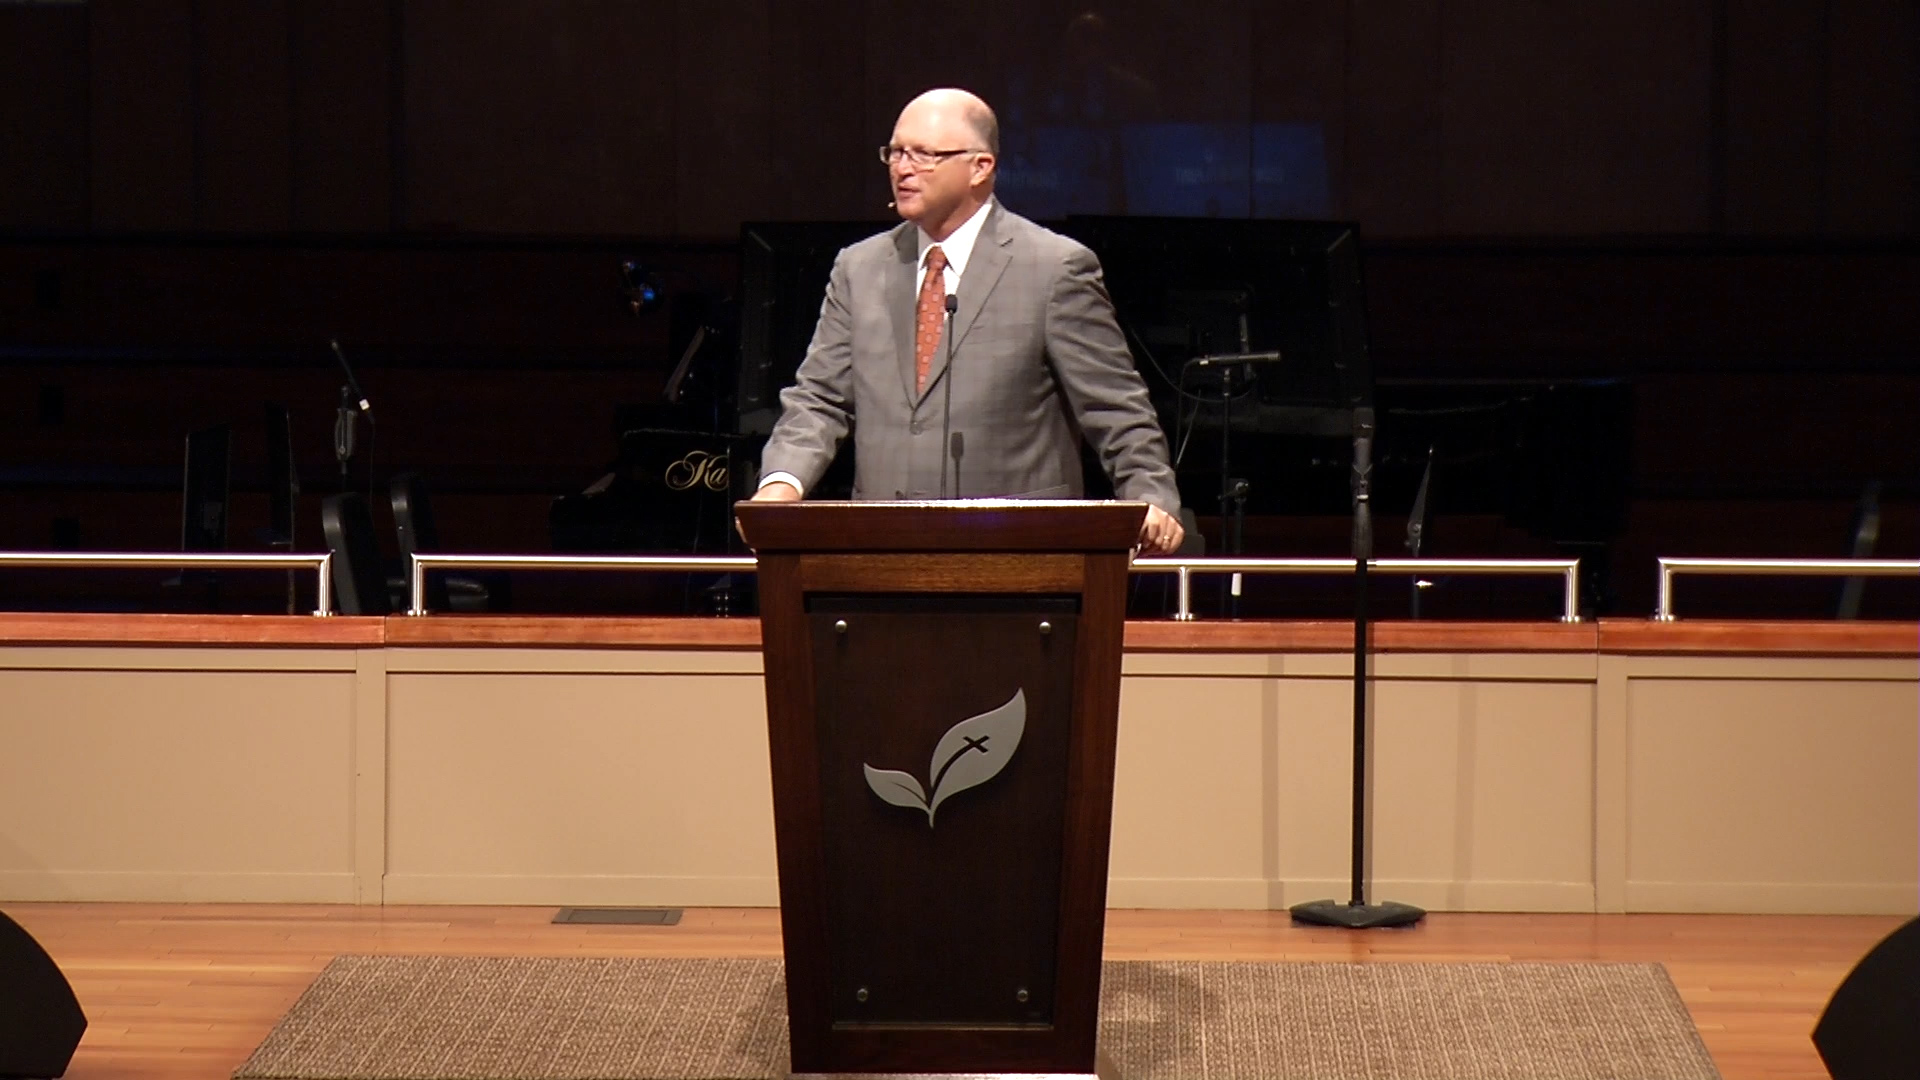 Pastor Paul Chappell: Assured by His Grace